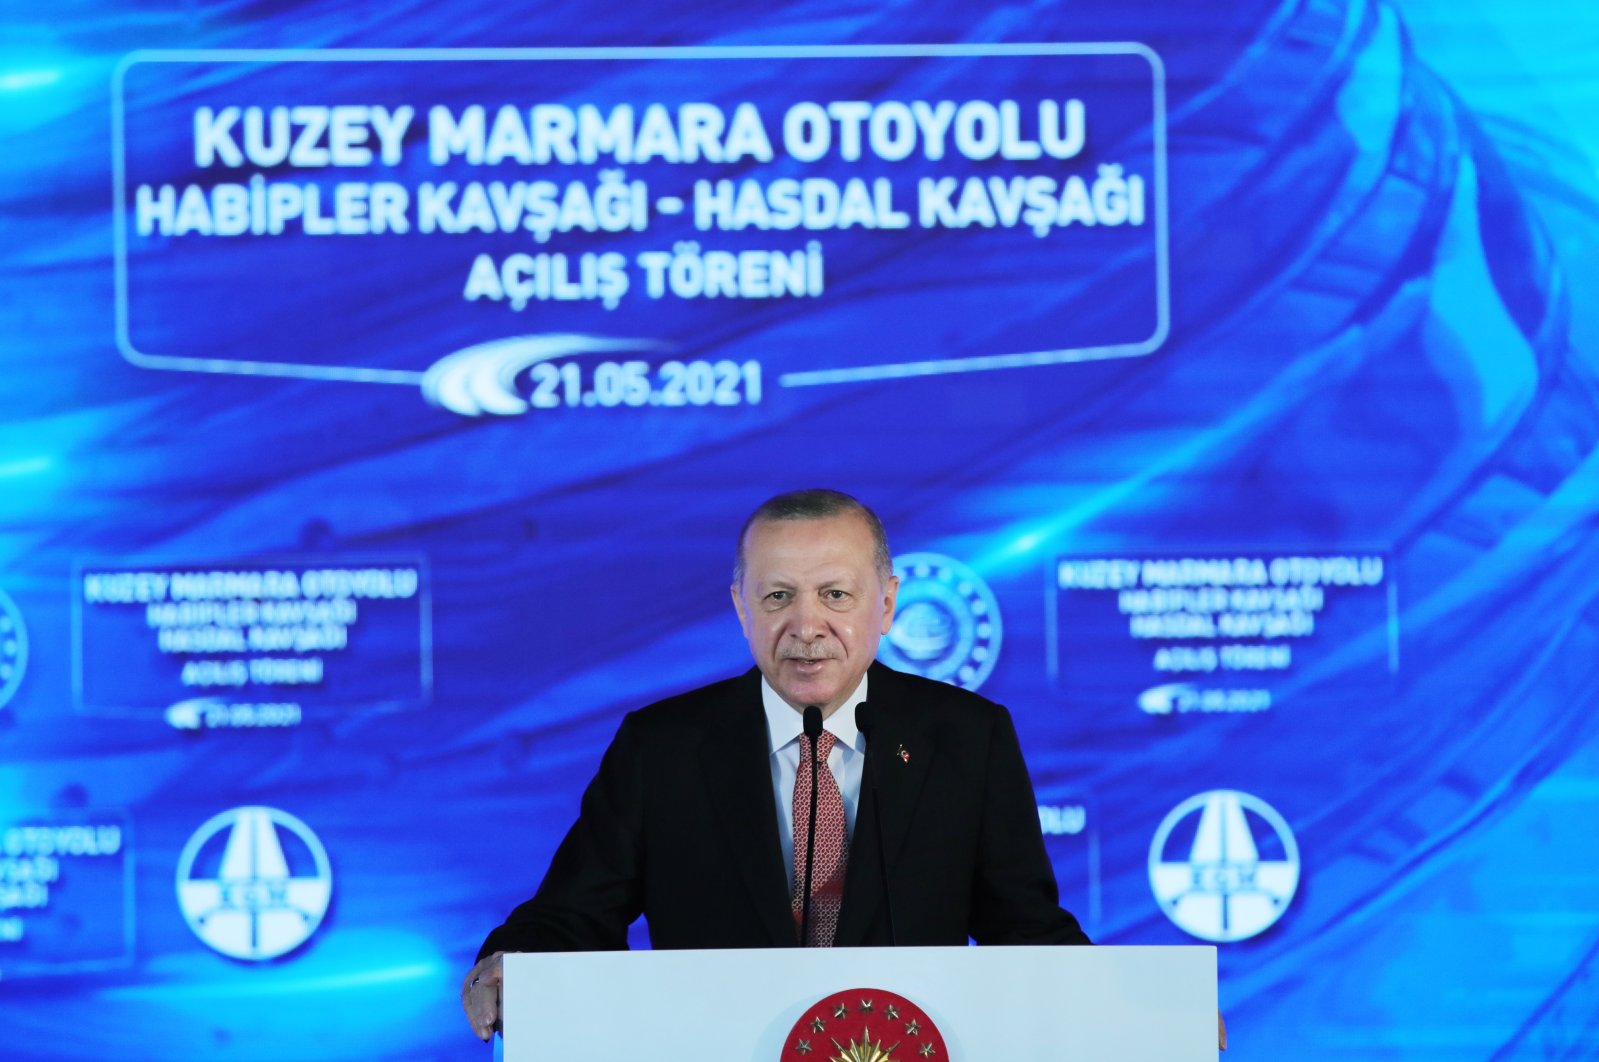 President Recep Tayyip Erdoğan speaks at the opening ceremony of the seventh and last section of the Northern Marmara Motorway, Istanbul, Turkey, May 21, 2021. (AA Photo)